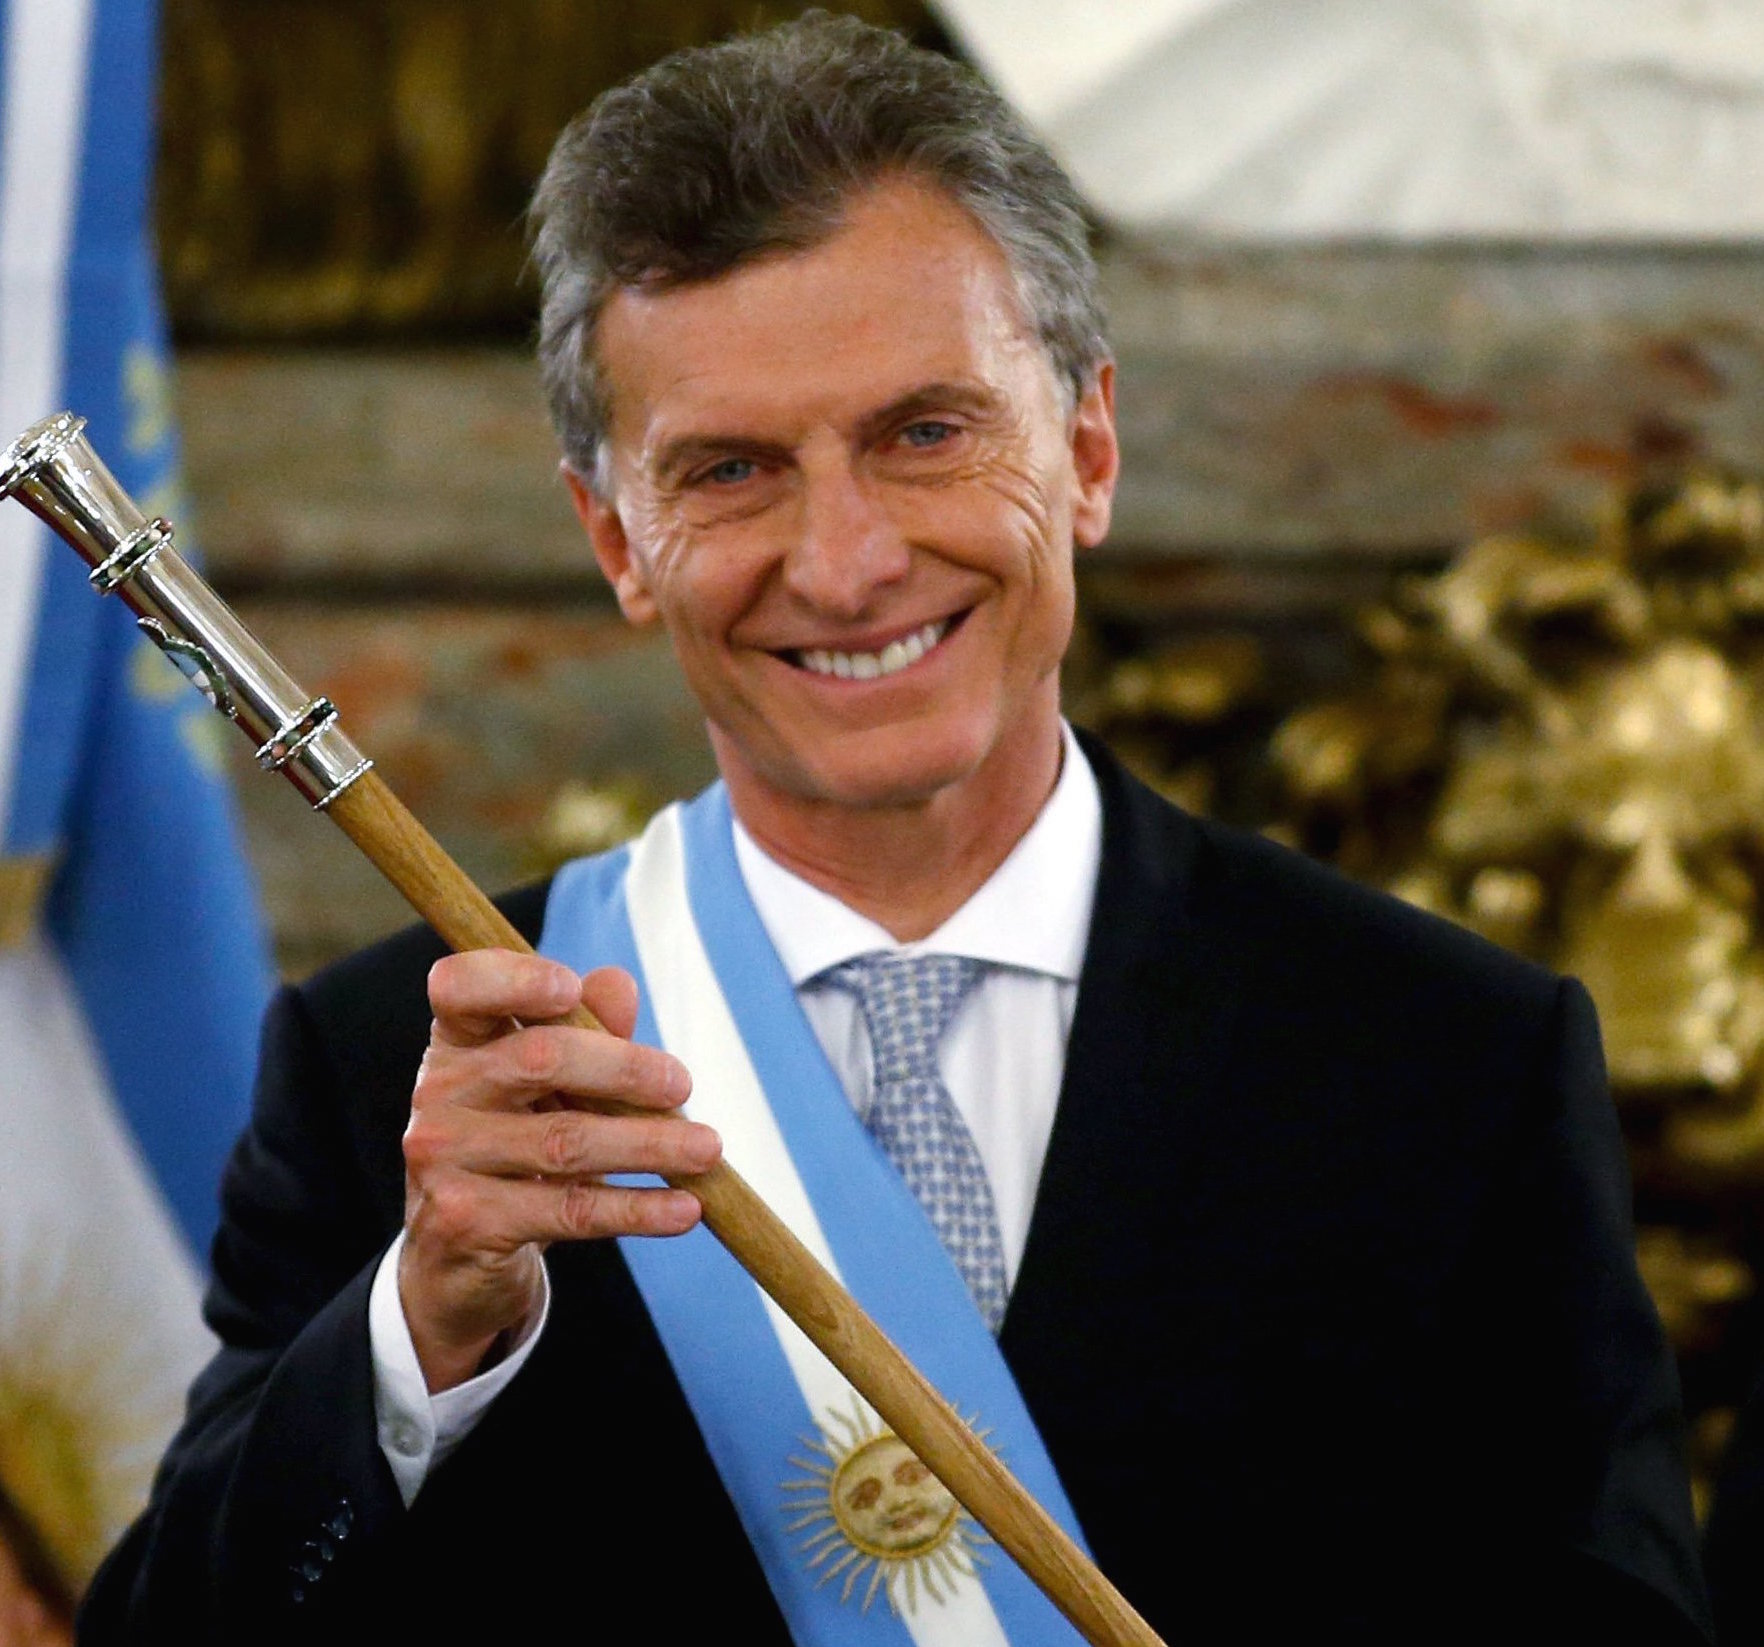 Argentina's President Mauricio Macri holds the symbolic leader's staff next to Vice-President Gabriela Michetti (L) and Senate provisional president Federico Pinedo (R) at Casa Rosada Presidential Palace in Buenos Aires, Argentina, December 10, 2015. REUTERS/Marcos Brindicci